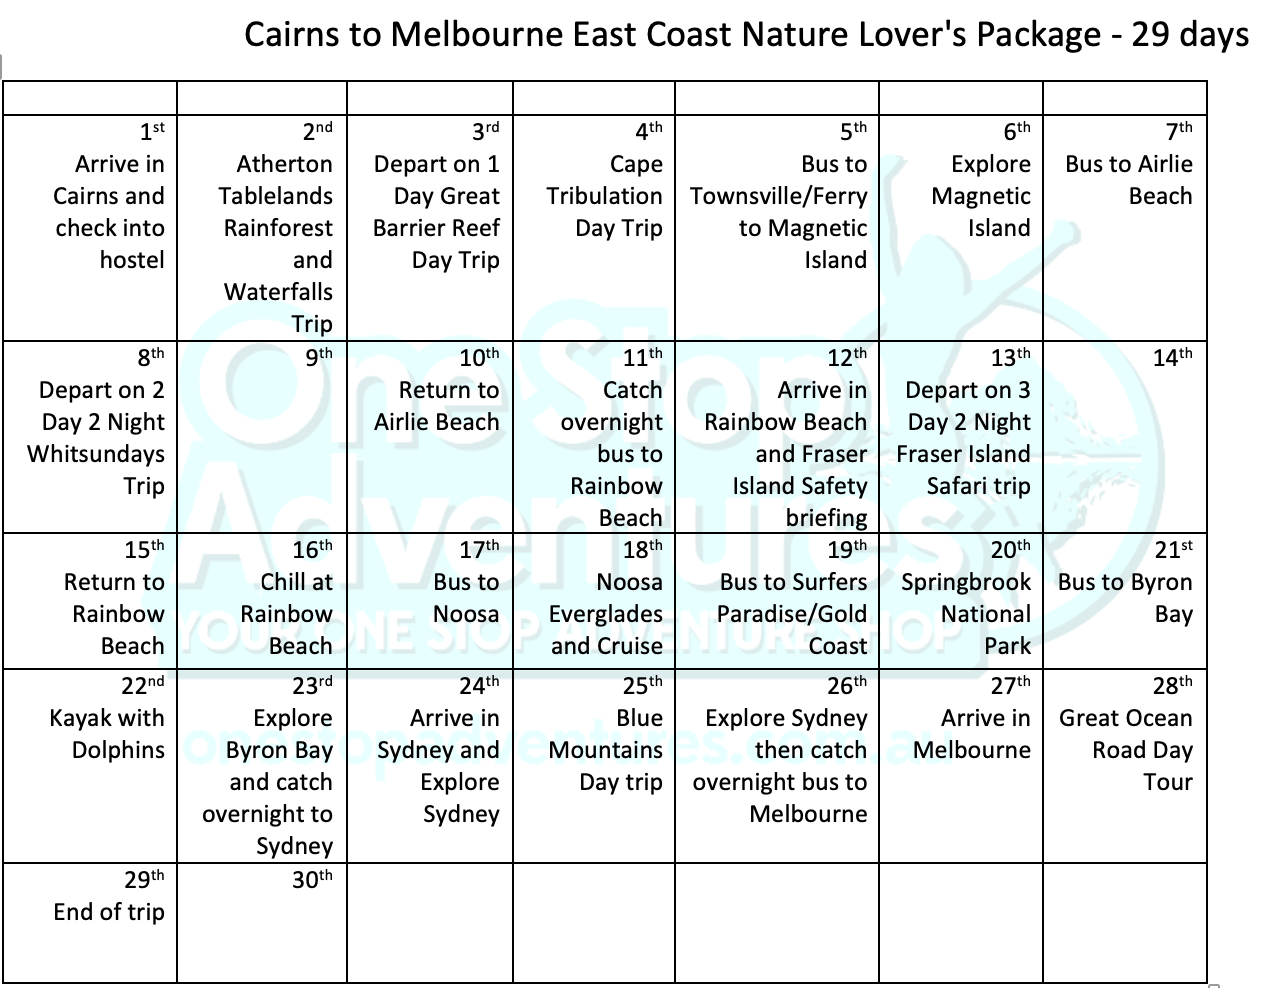 Cairns to Sydney East Coast Itinerary